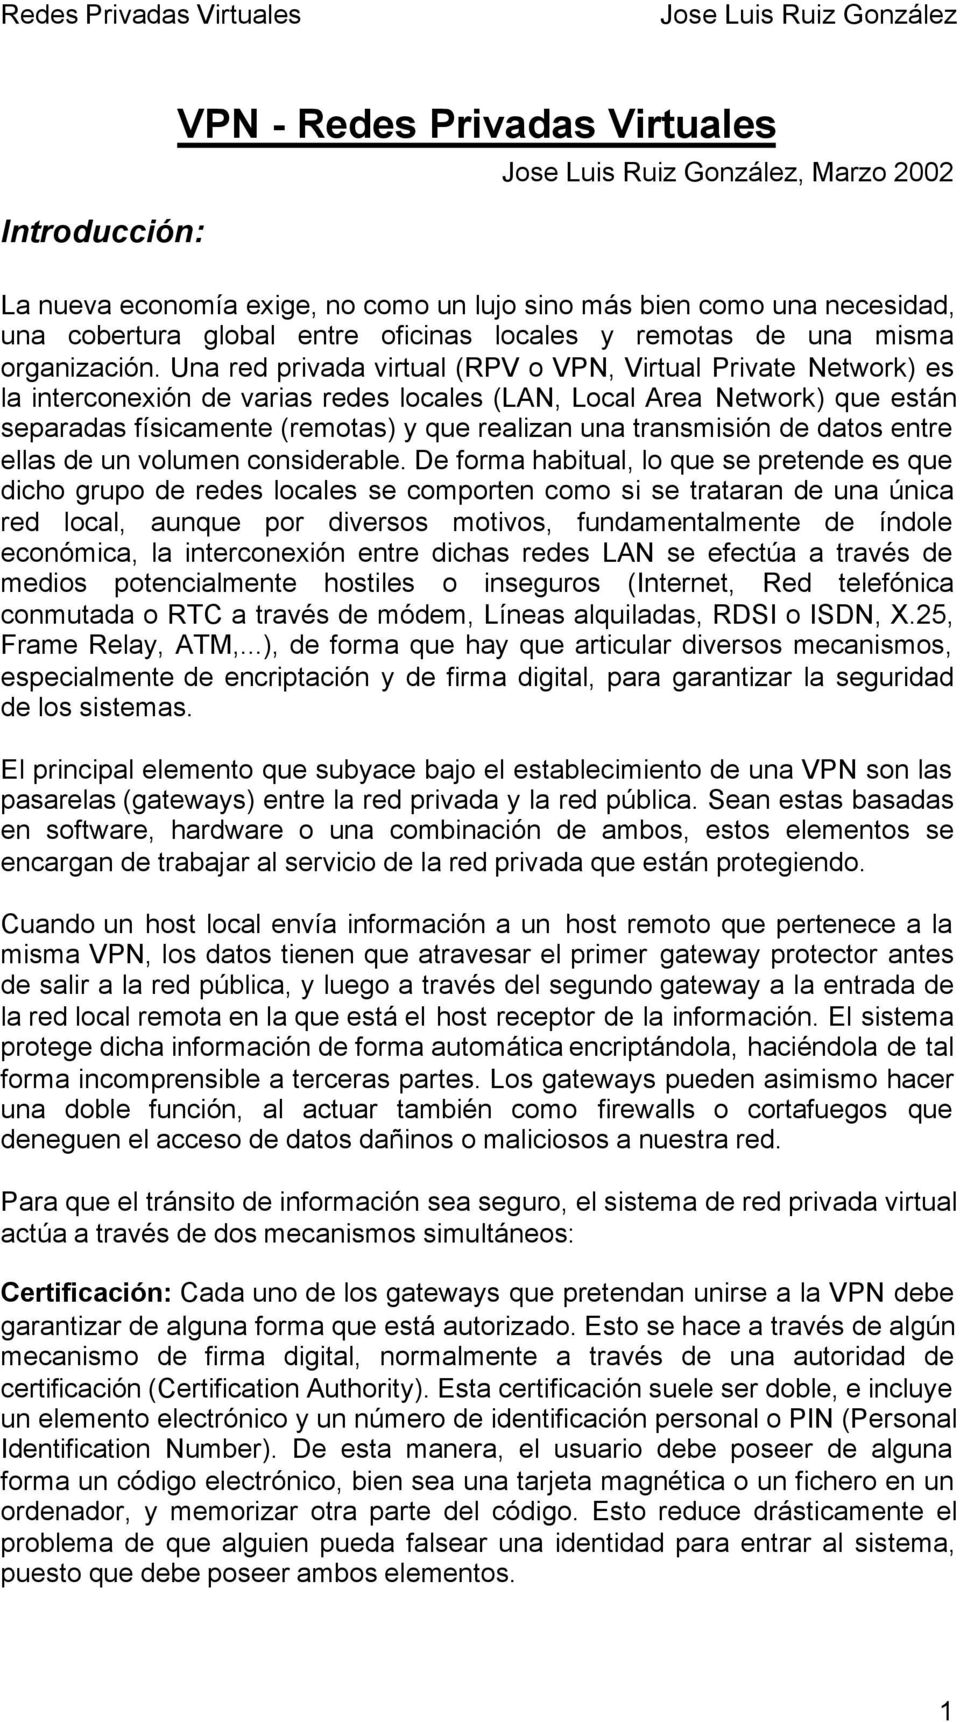 Una red privada virtual (RPV o VPN, Virtual Private Network) es la interconexión de varias redes locales (LAN, Local Area Network) que están separadas físicamente (remotas) y que realizan una